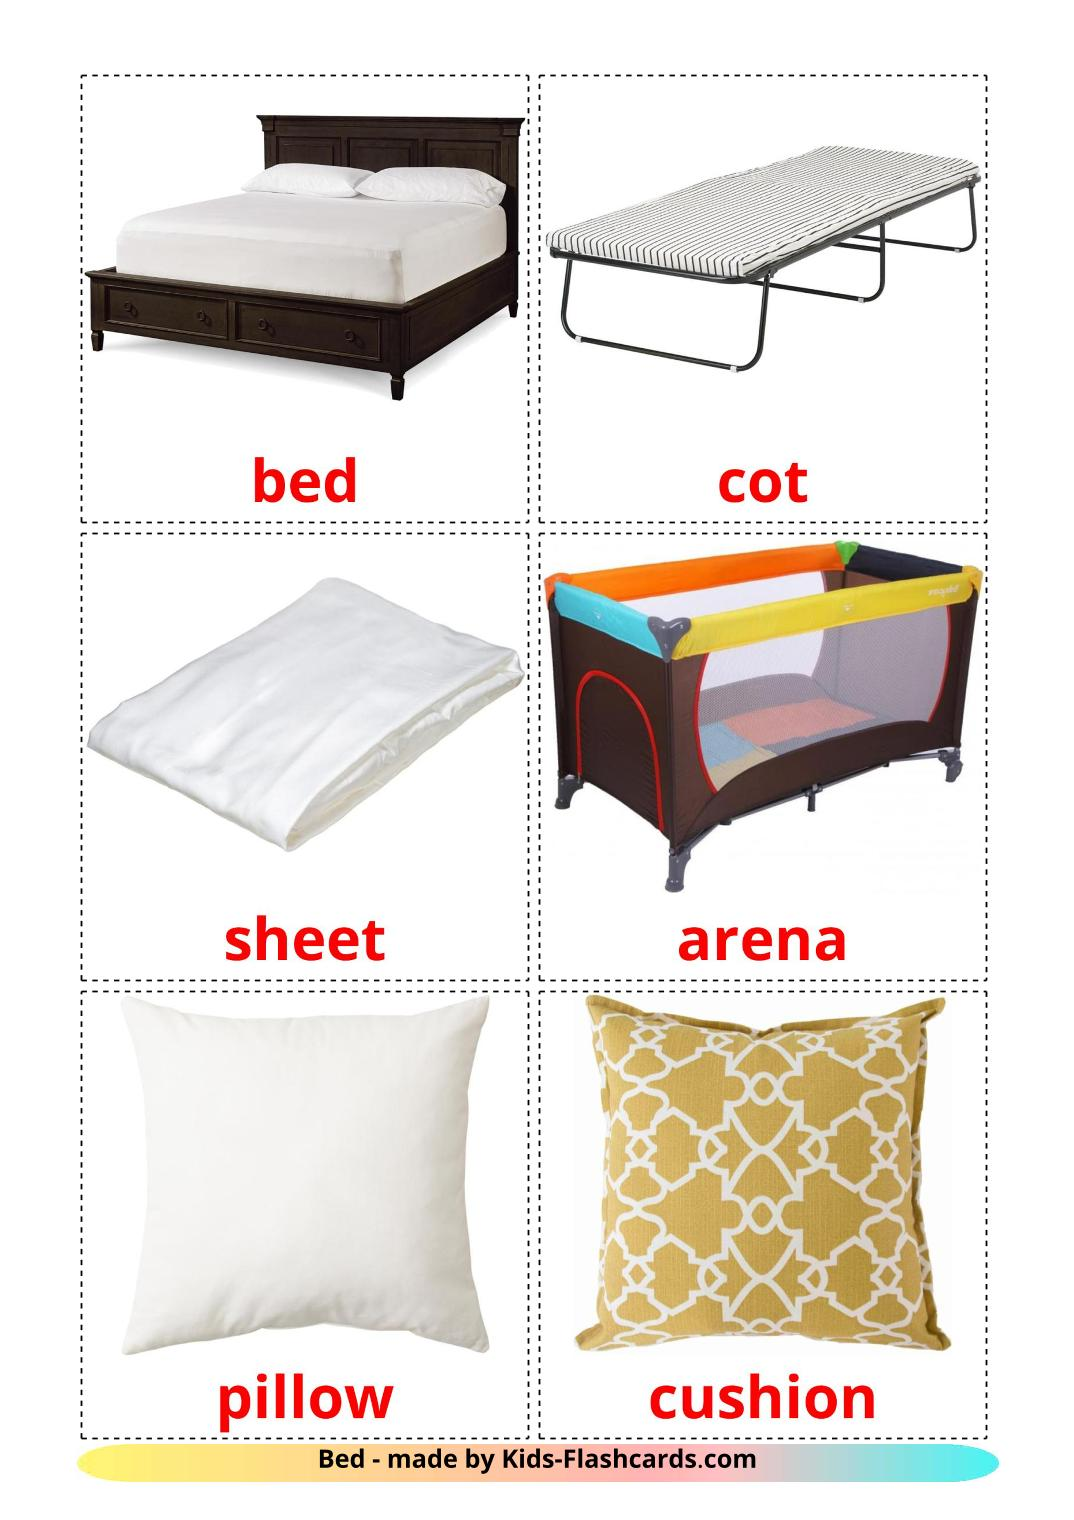 Bed picture cards for Kindergarden in english